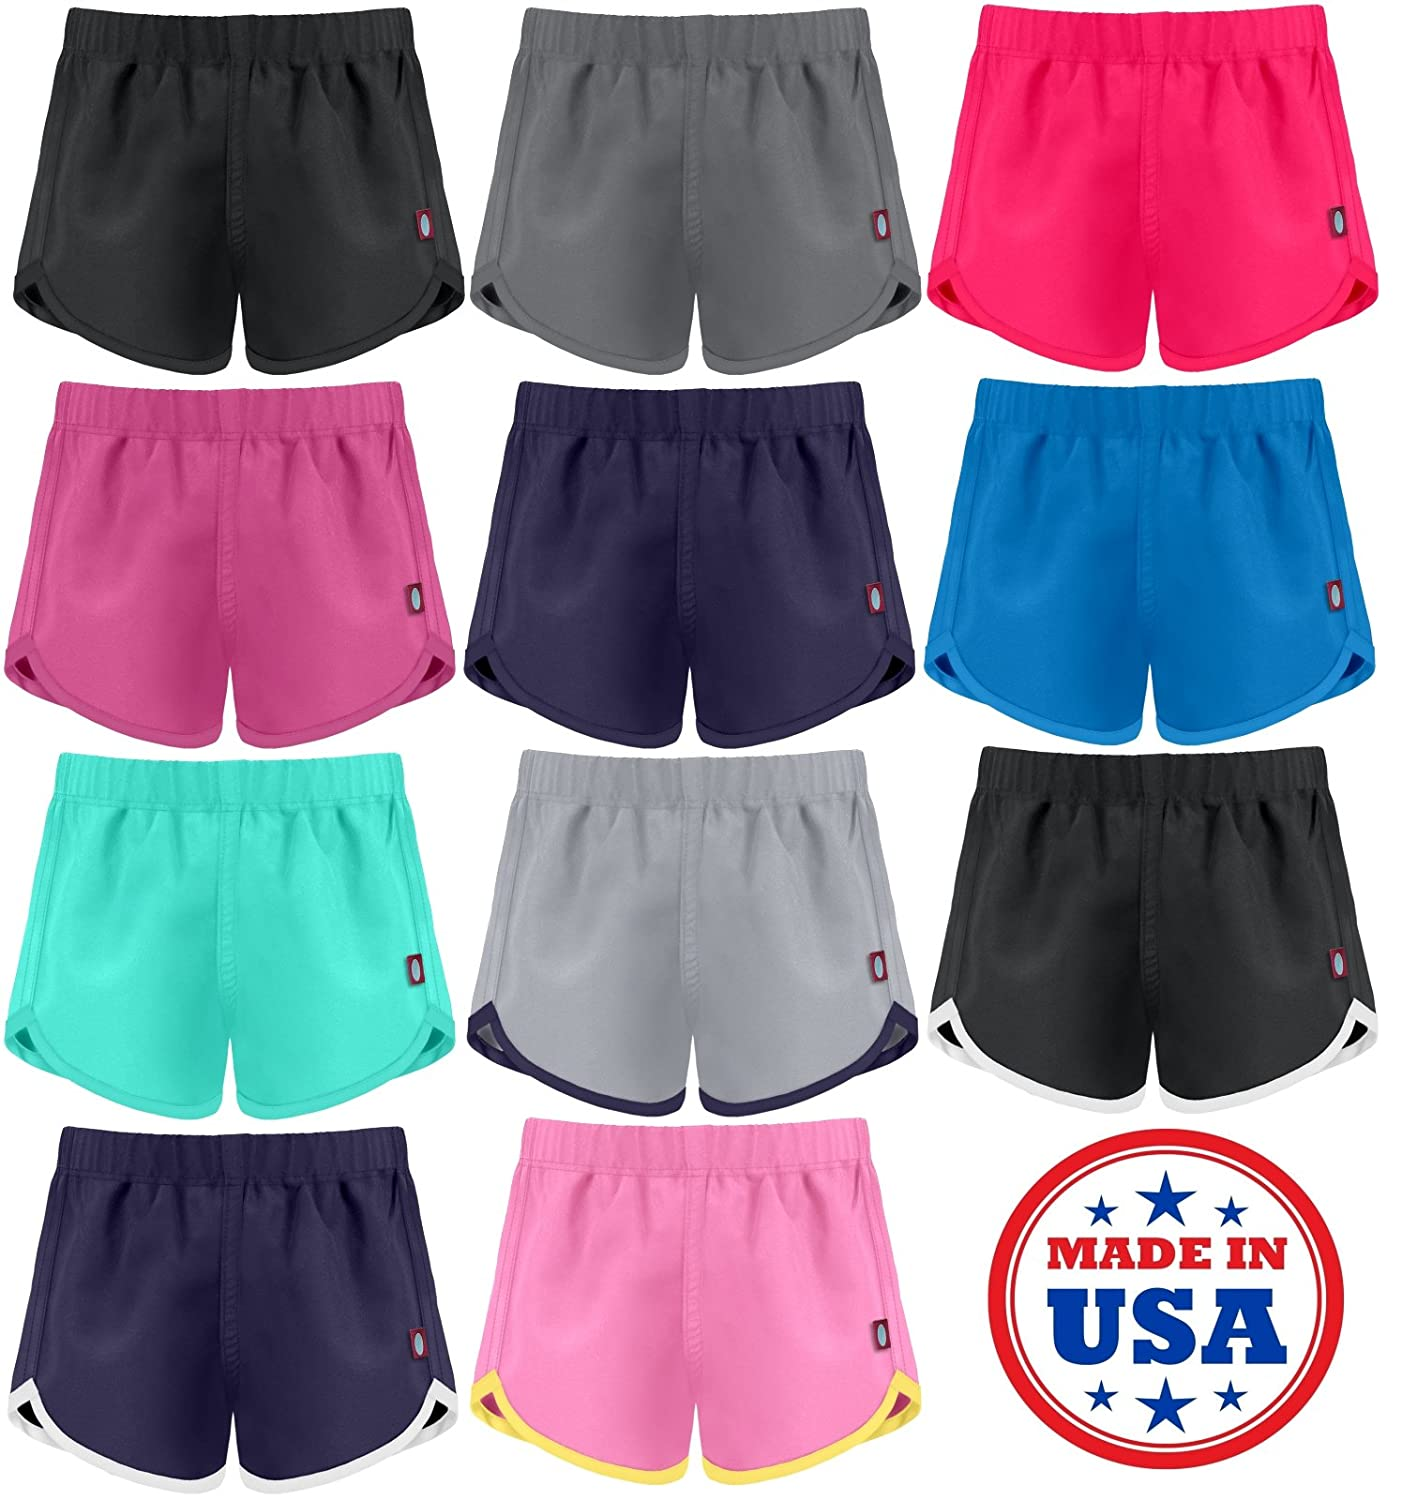 City Threads Girls Swimming Suit Bottom Board Short Swim Athletic Shorts Beach Pool Camp Running Sports Wicking Fast Dry 12 Navy